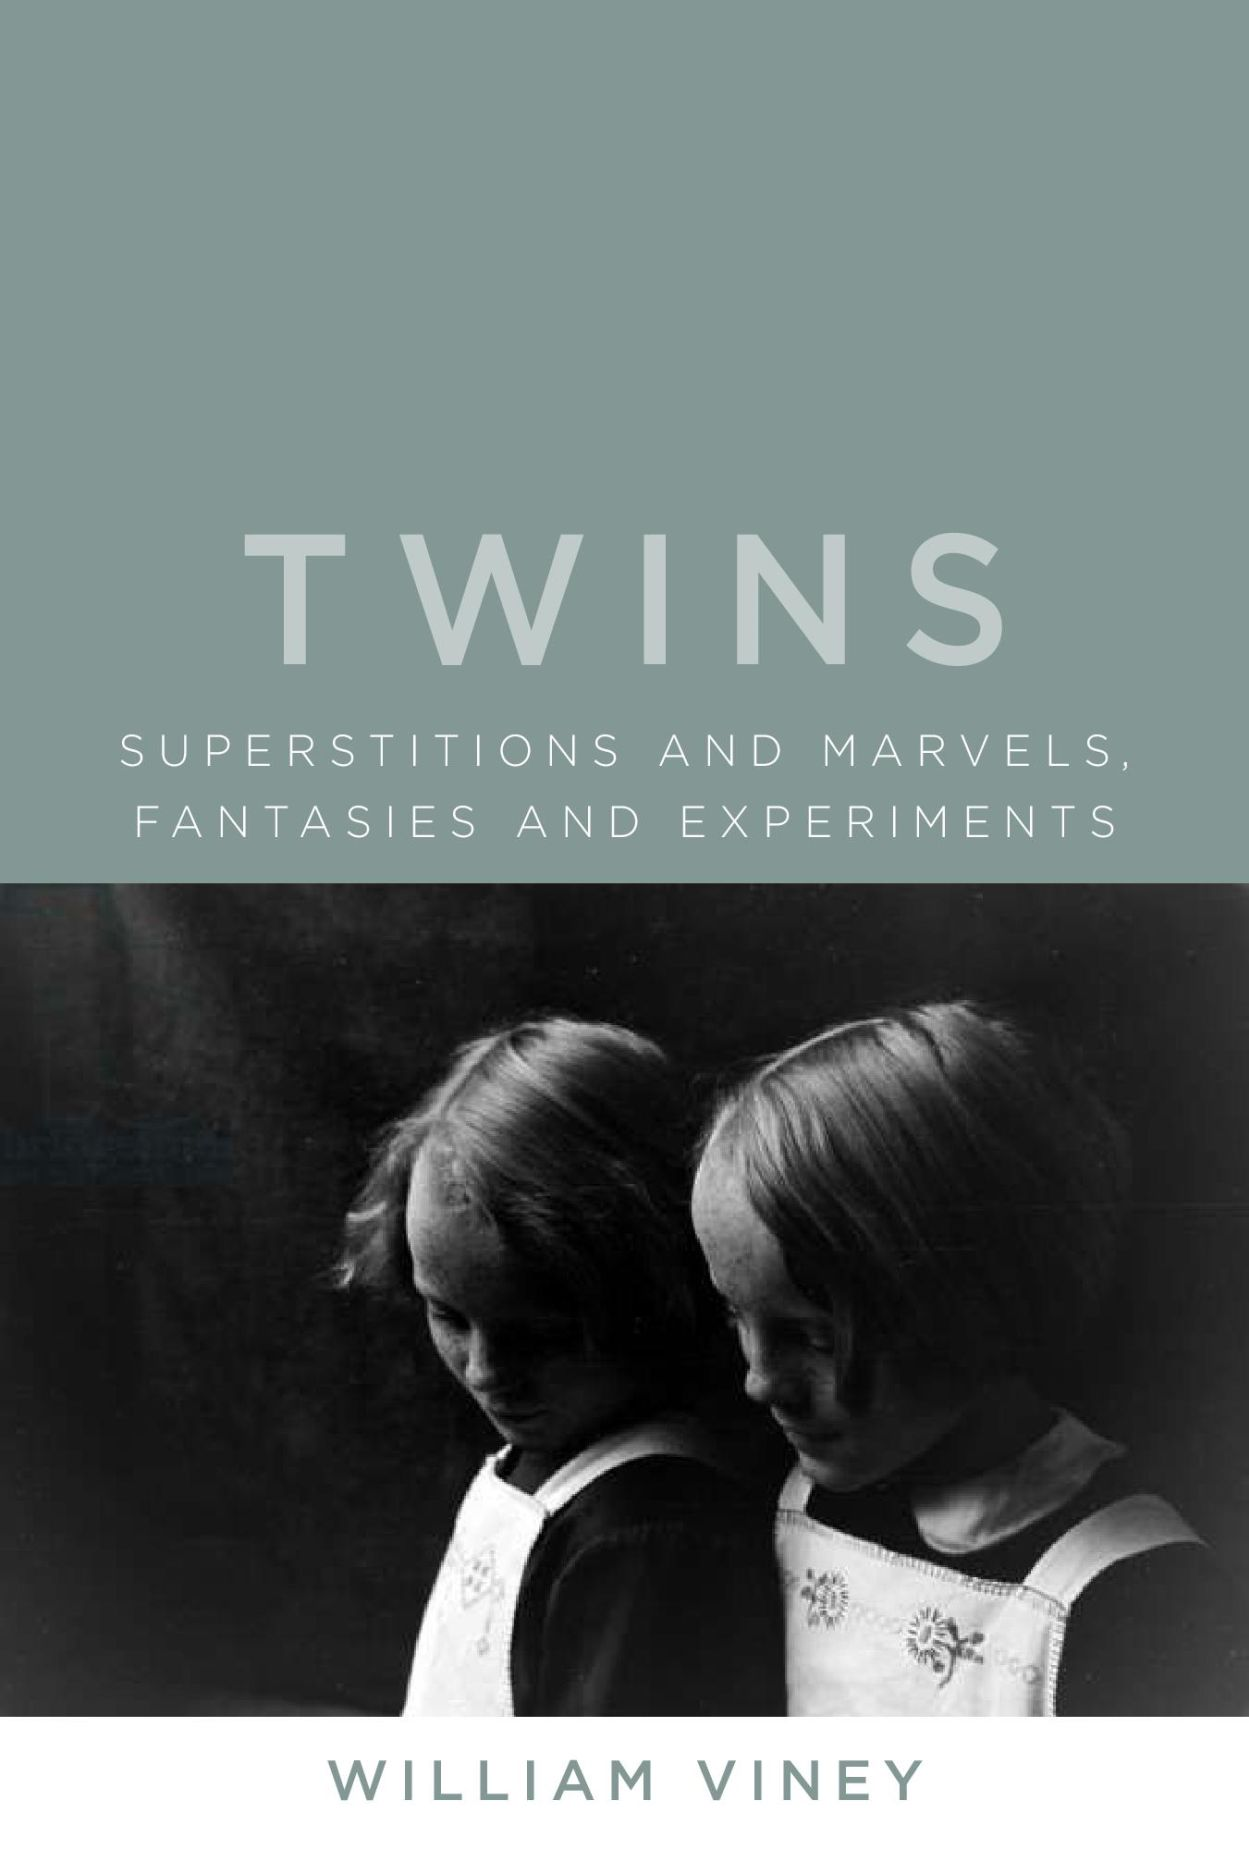 Twins: Superstitions and Marvels, Fantasies and Experiments